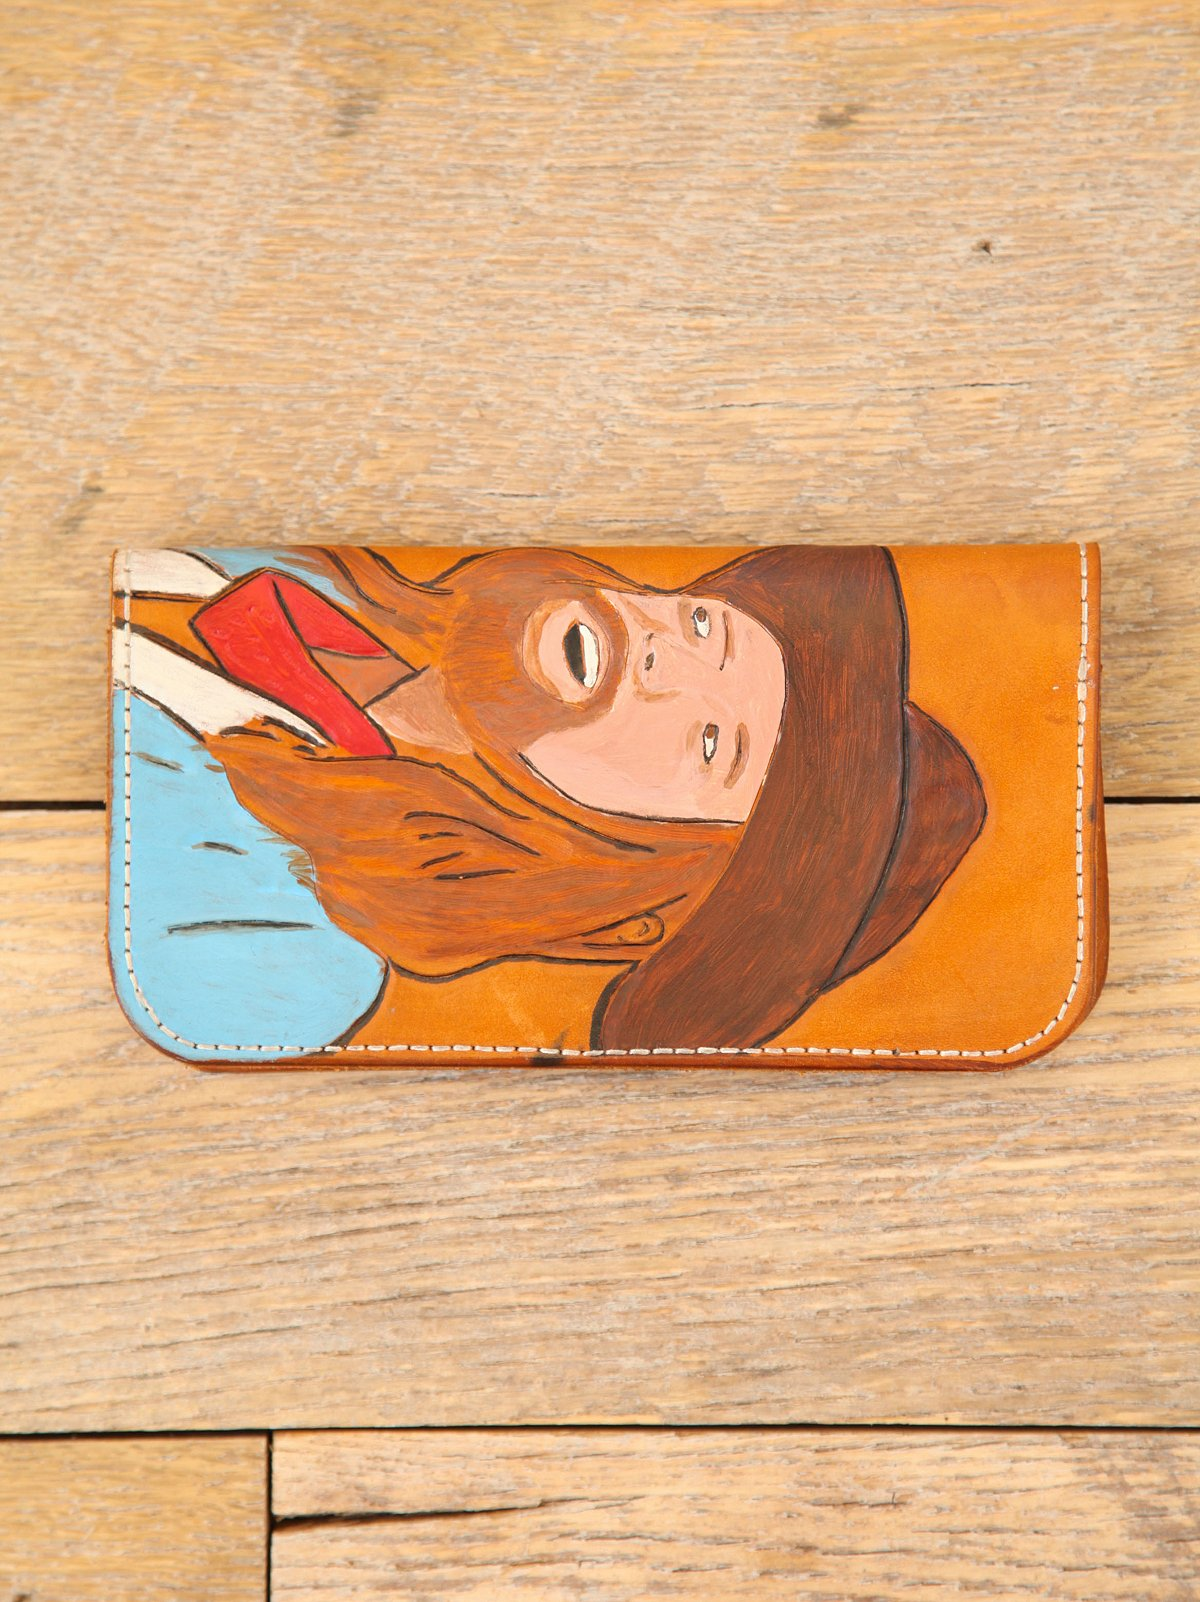 Vintage Hand-Painted Leather Wallet